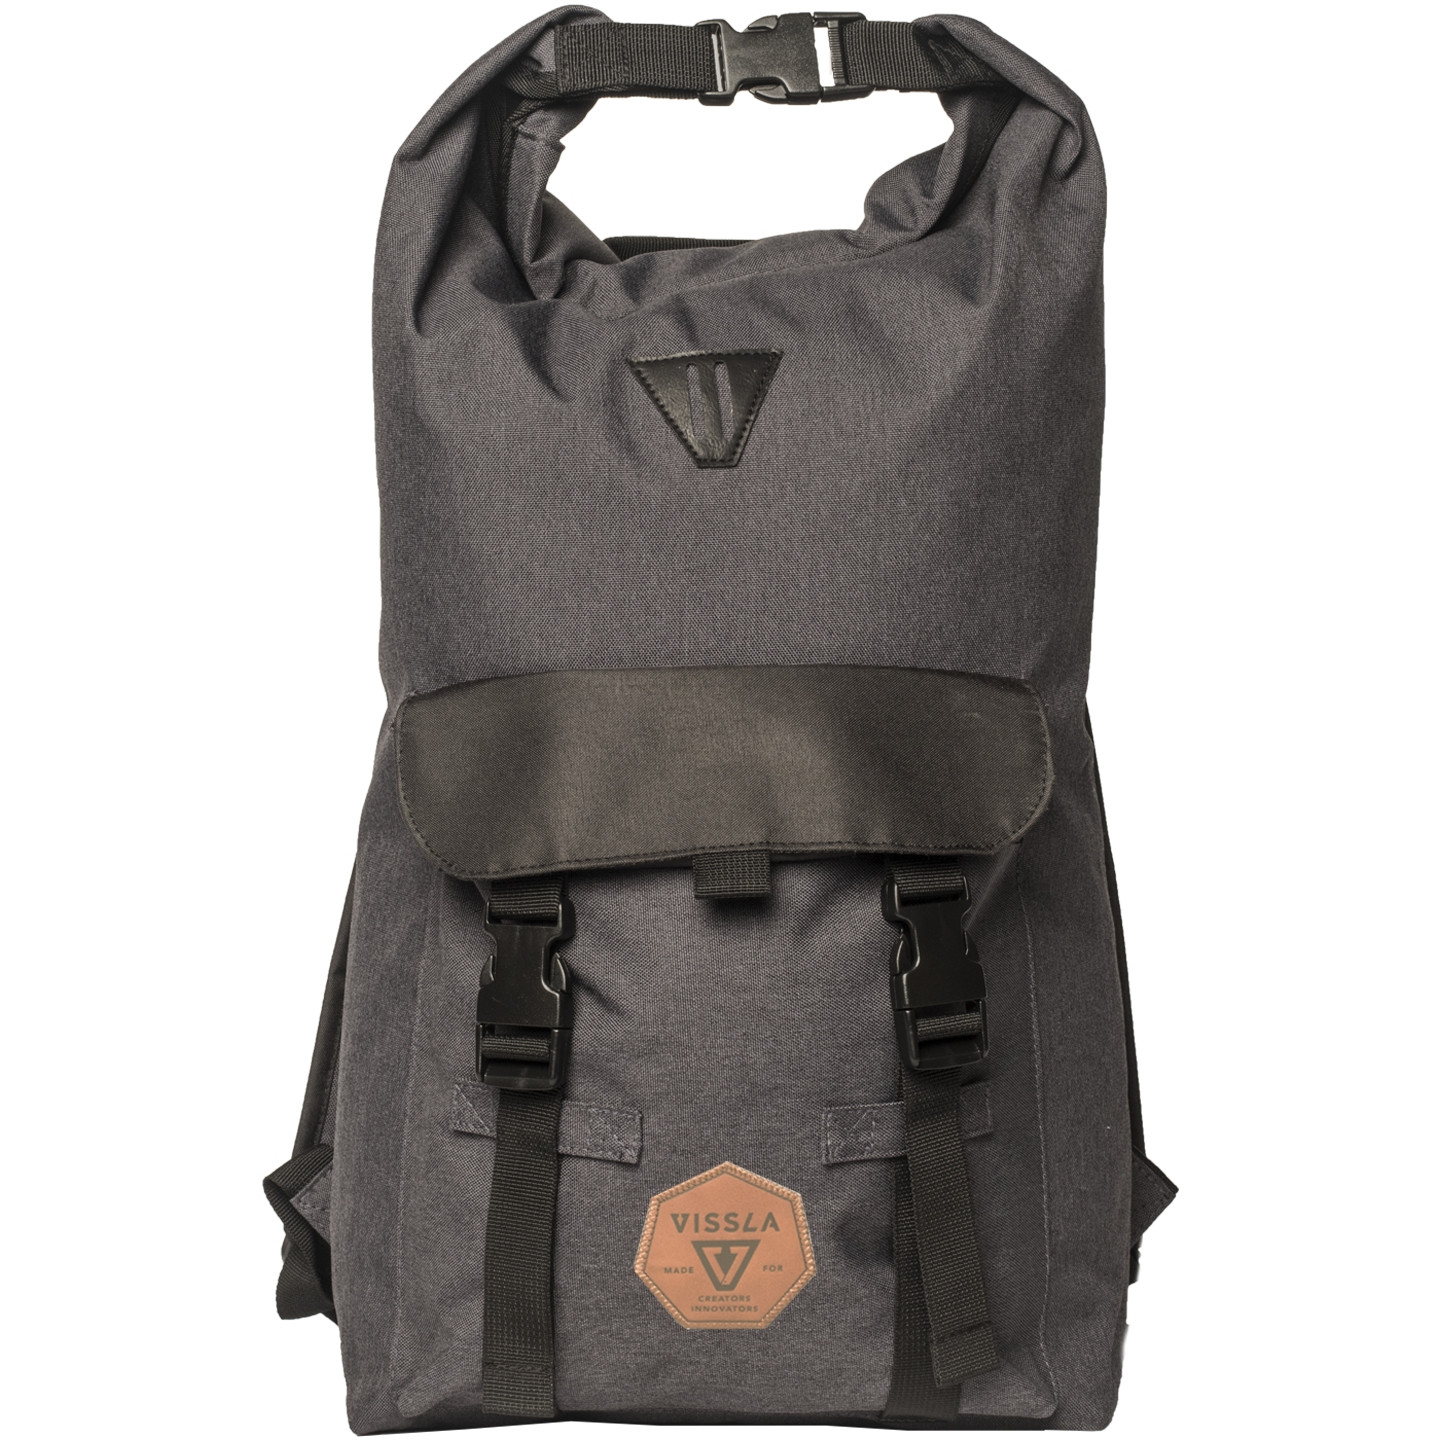 VISSLA SURFER JR BACKPACK